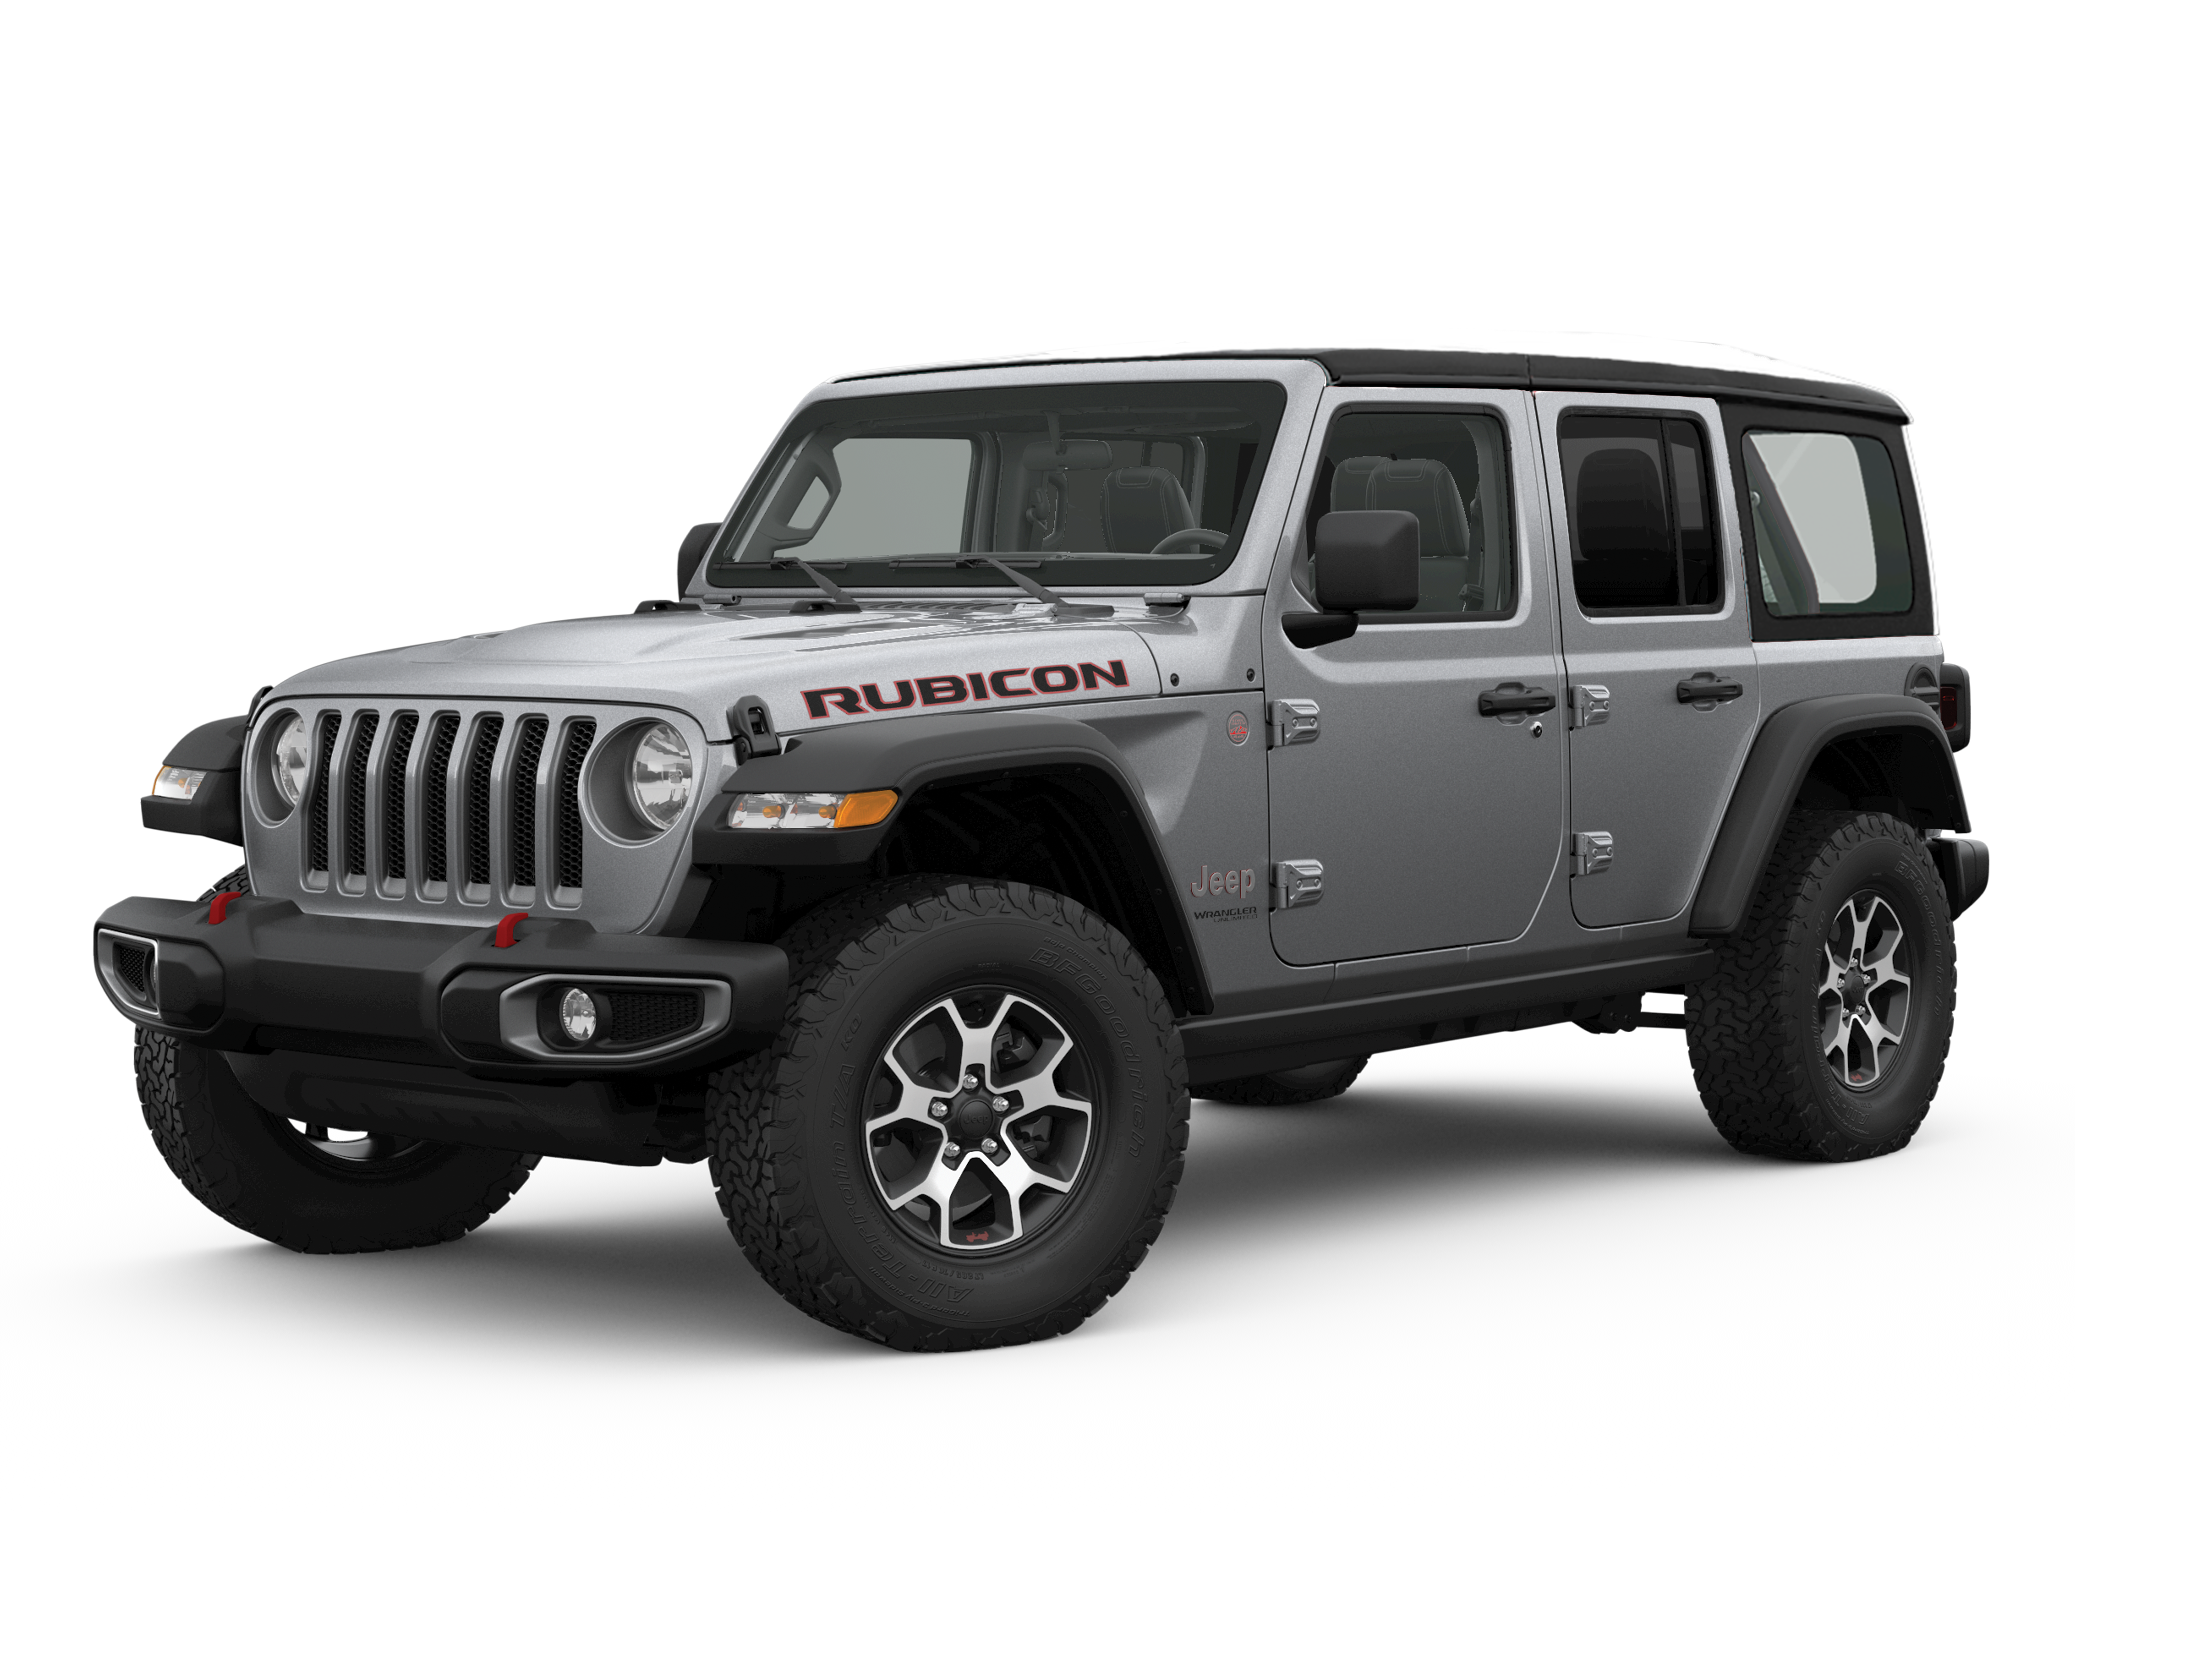 Auto Nation Group Inc Ang The Official Importer And Distributor Of Chrysler Dodge Jeep And Ram Vehicl Jeep Wrangler Rubicon Wrangler Rubicon Jeep Rubicon